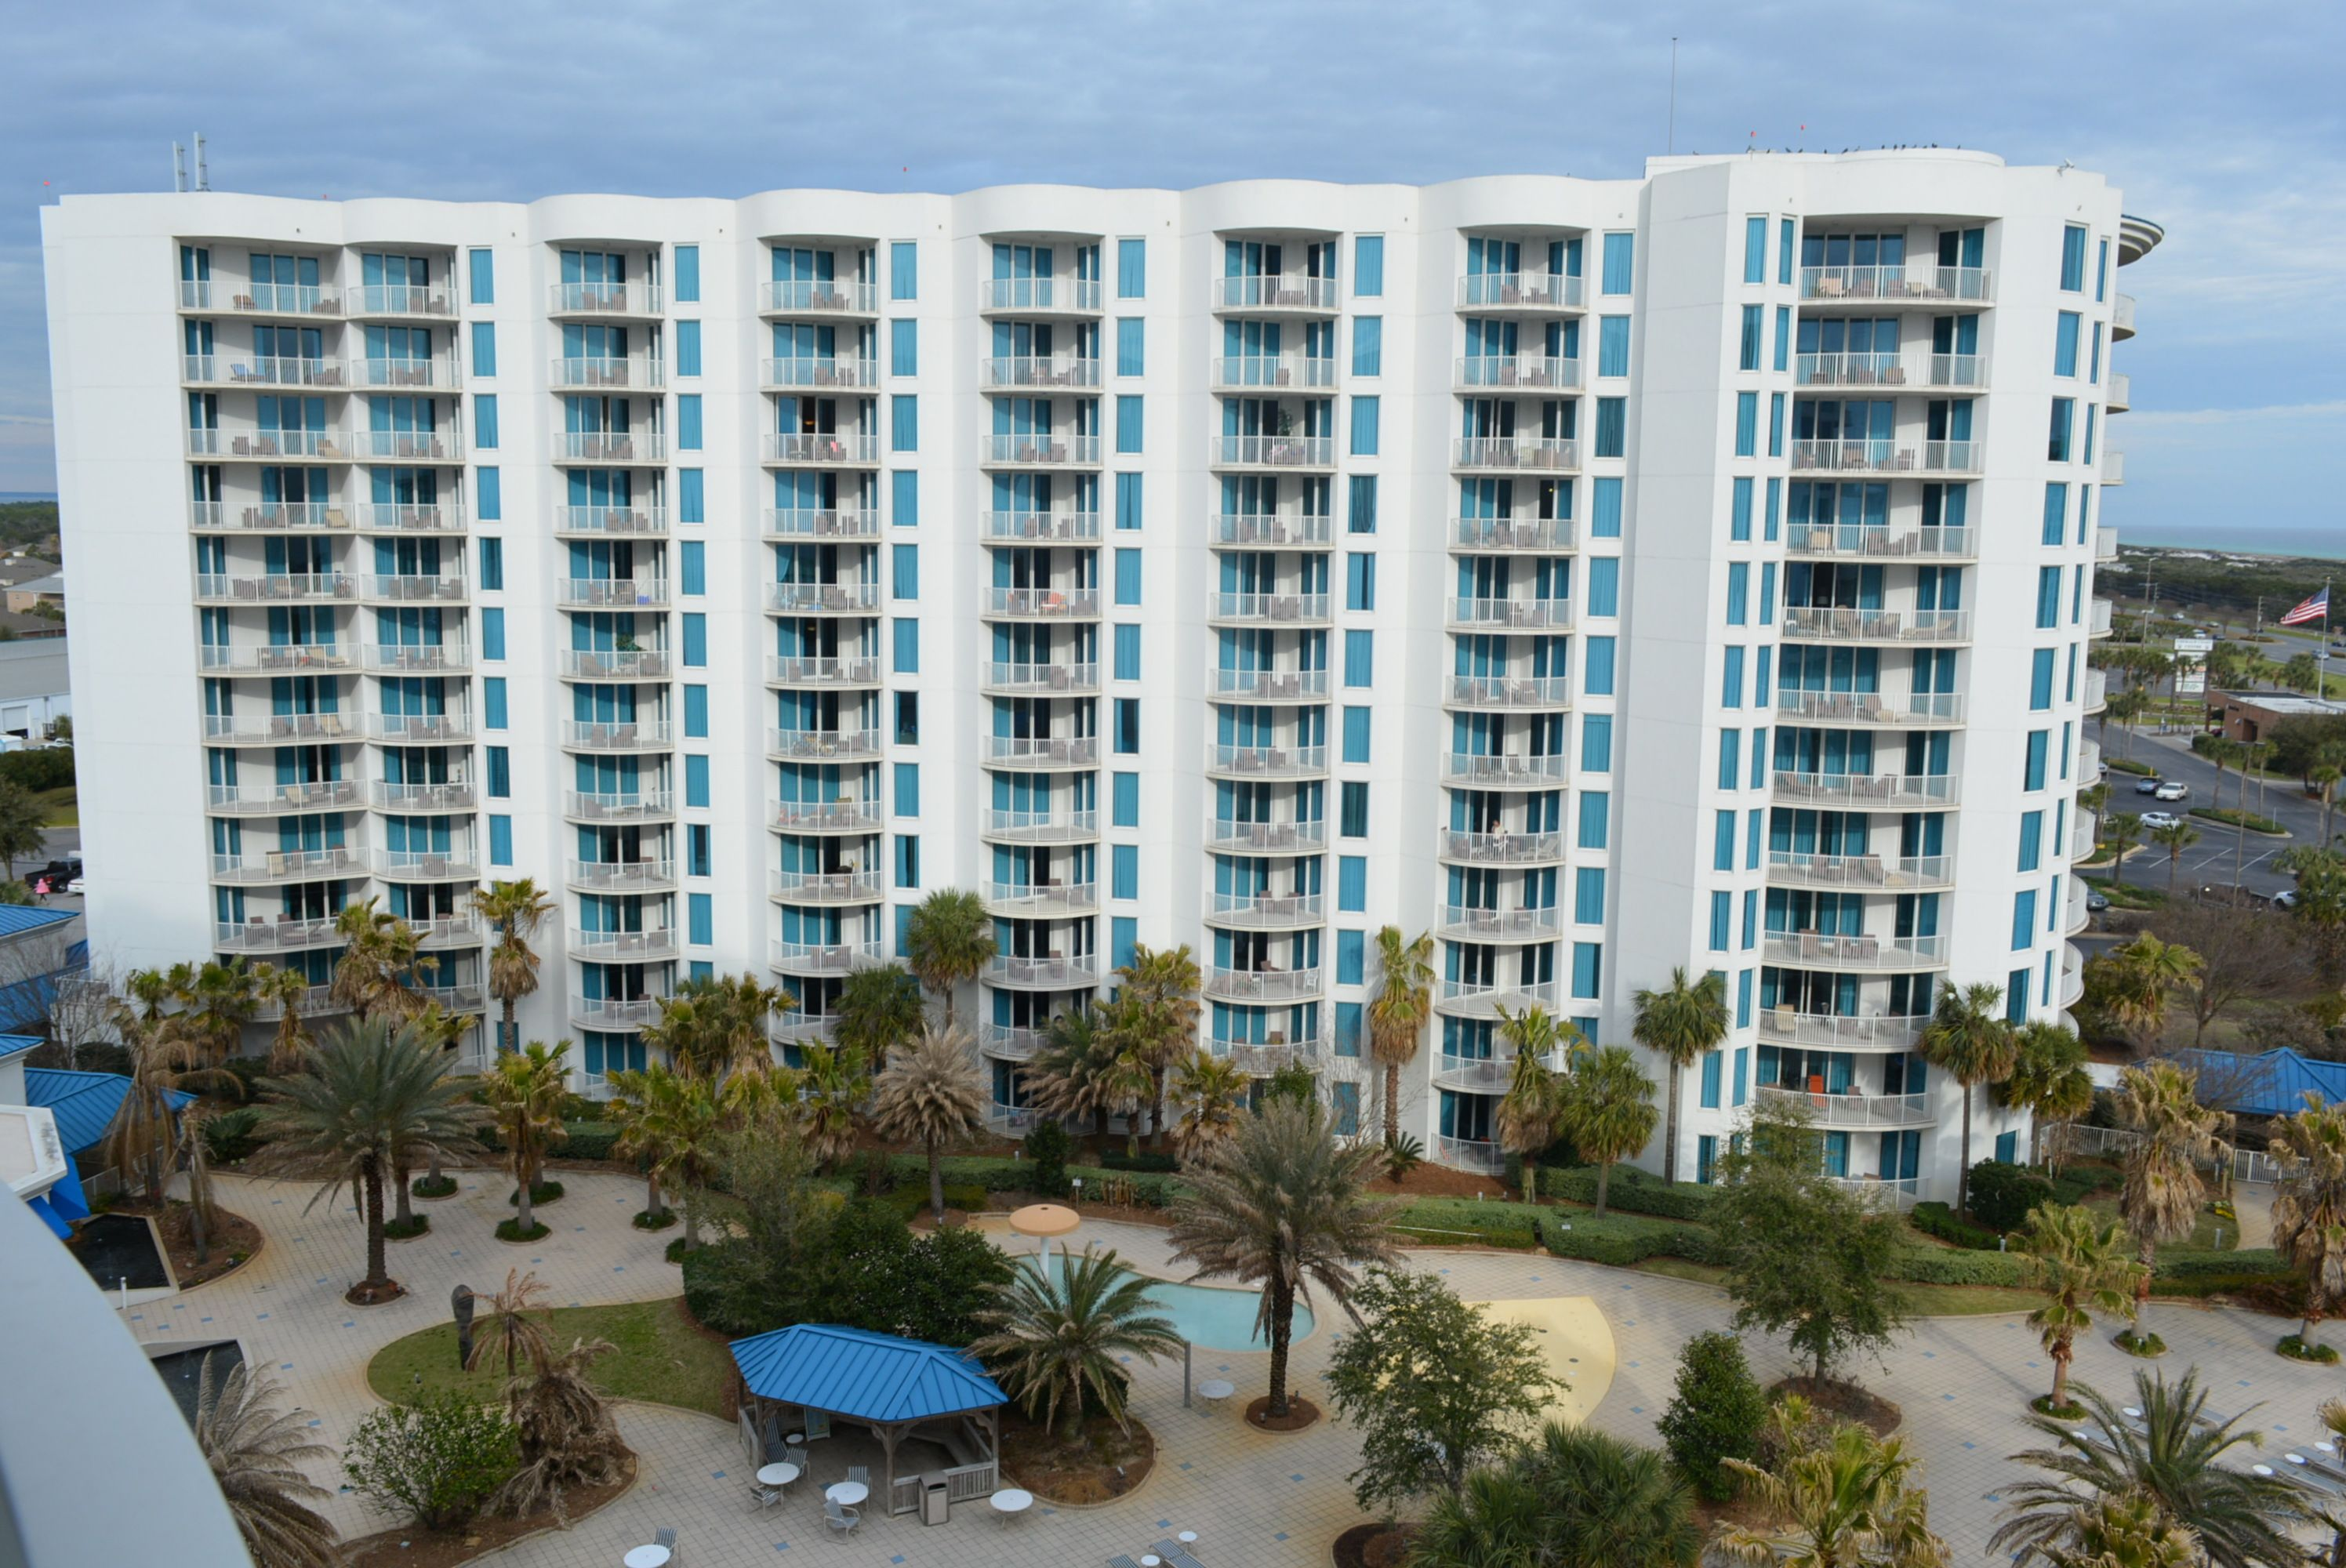 Palms Of Destin Condos Florida Condos Condos For Sale Destin